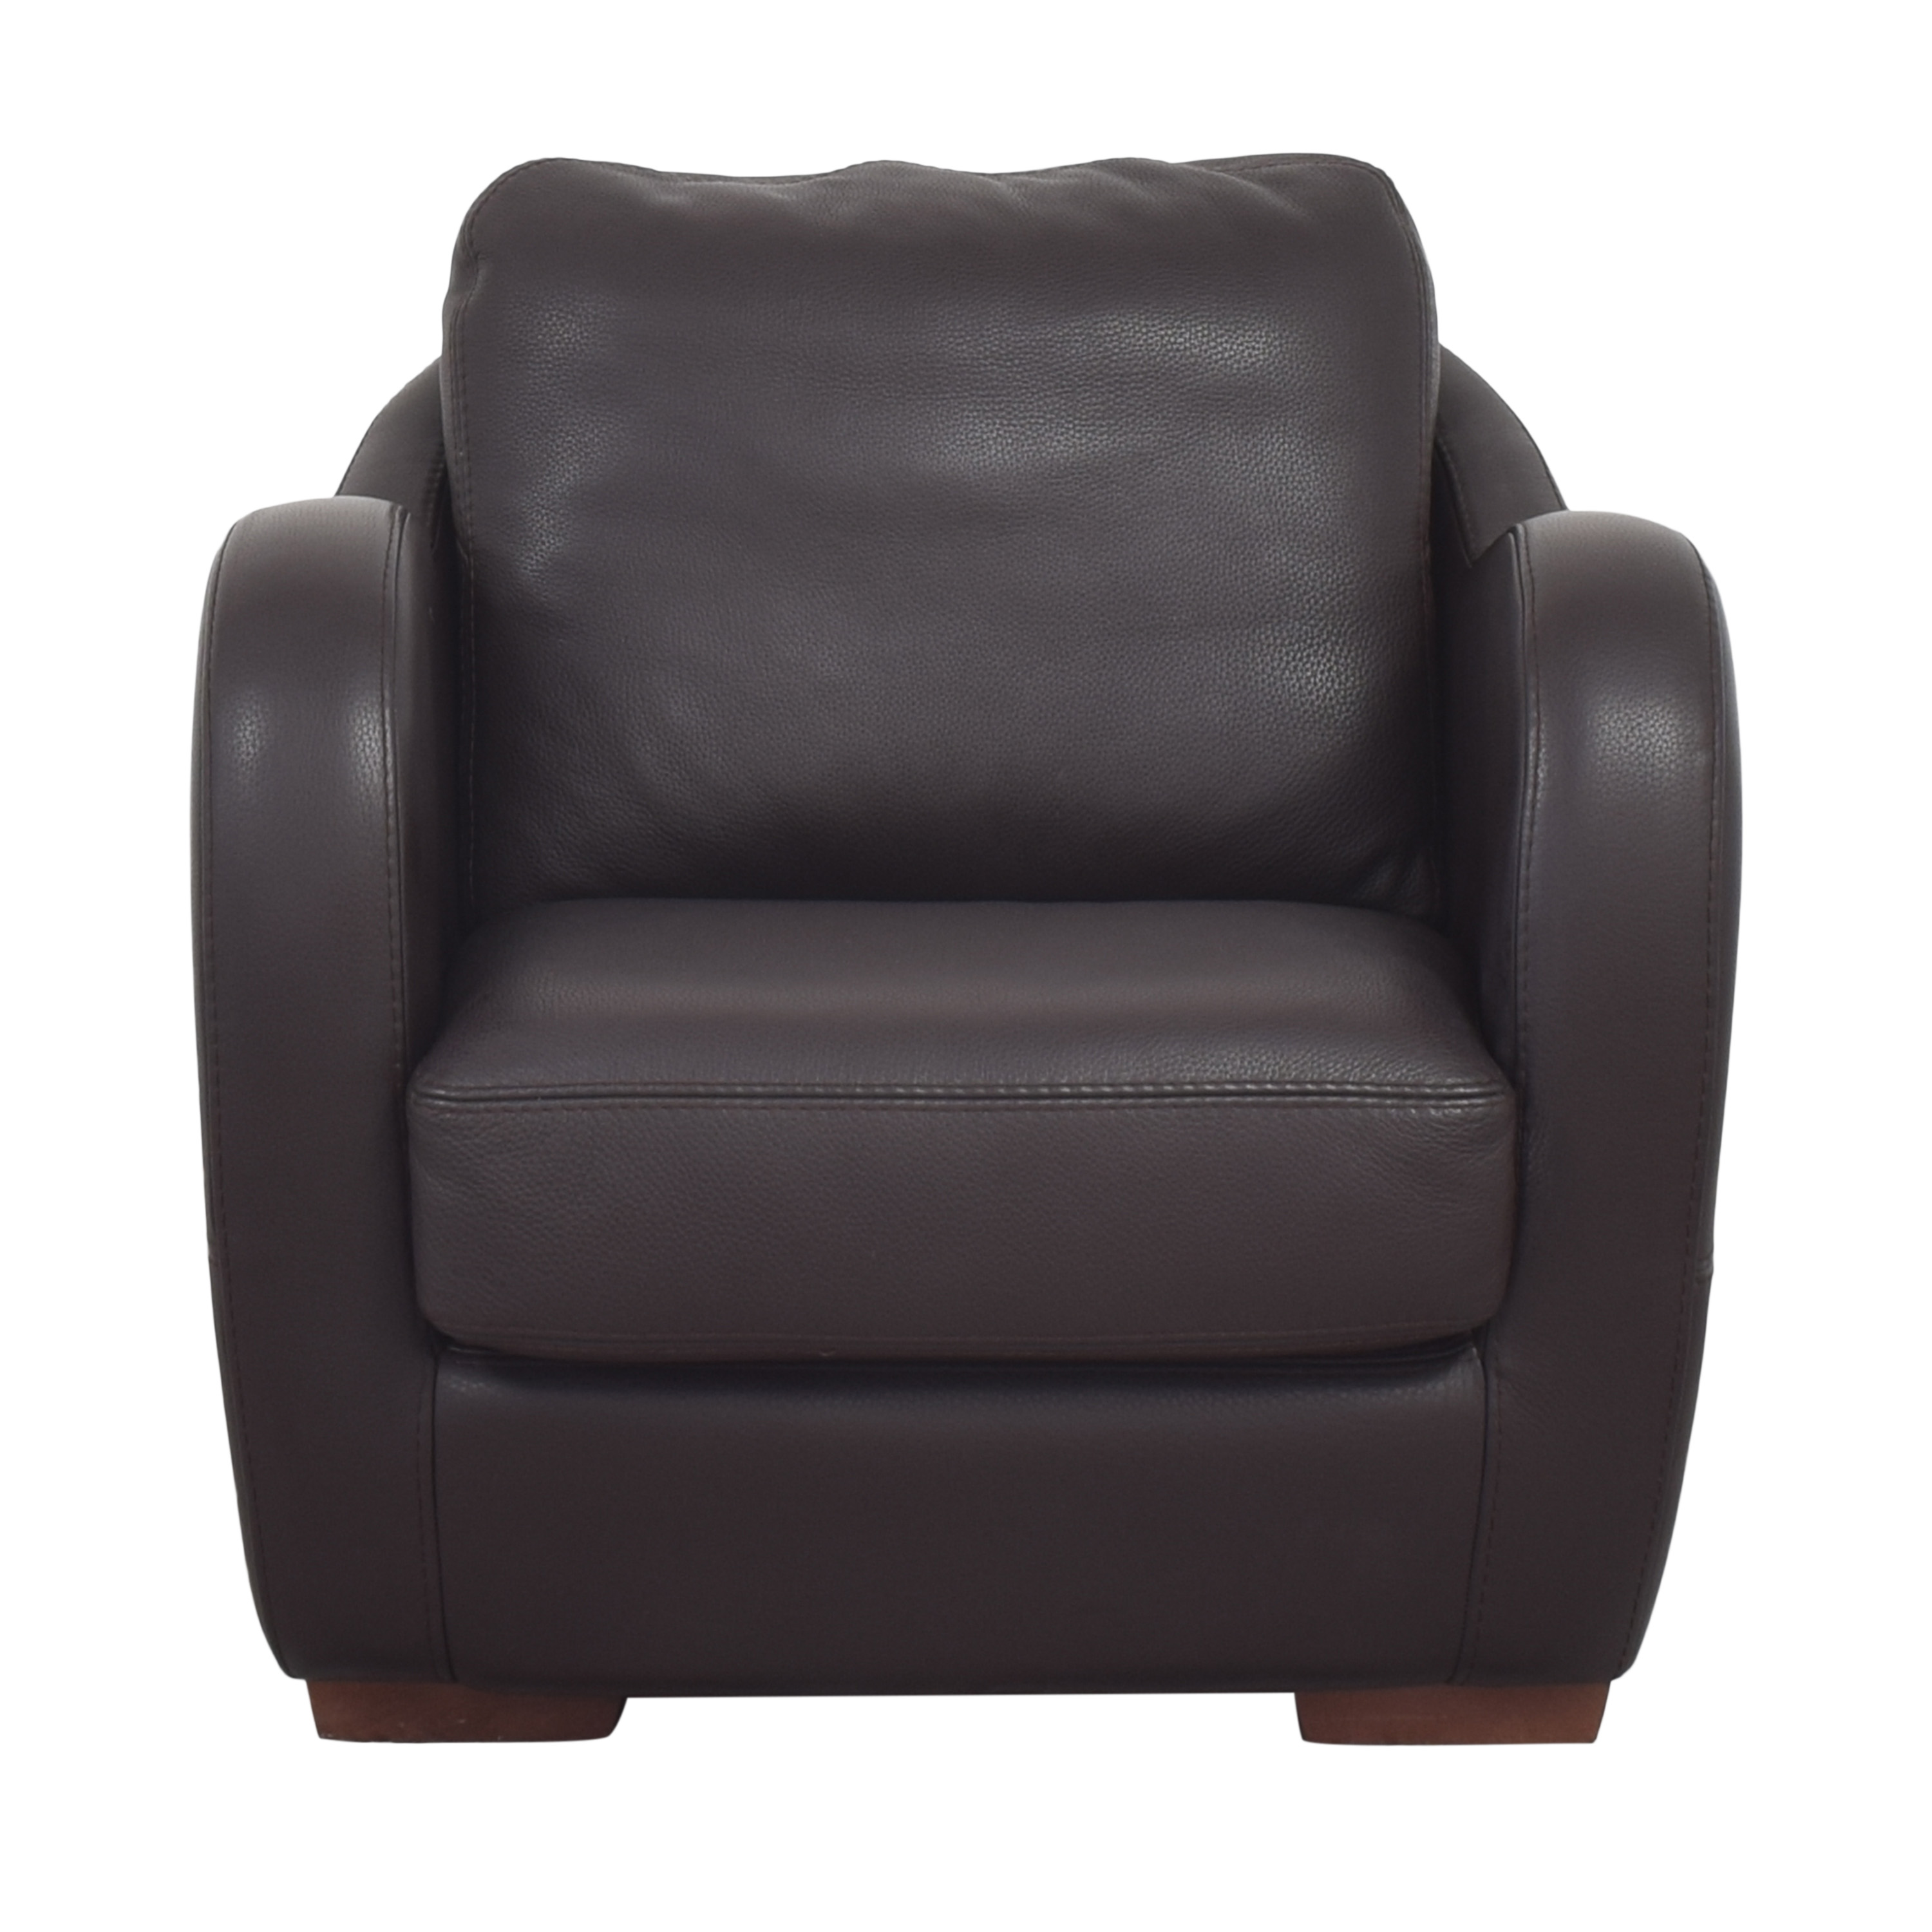 Maurice Villency Maurice Villency Club Chair with Ottoman coupon